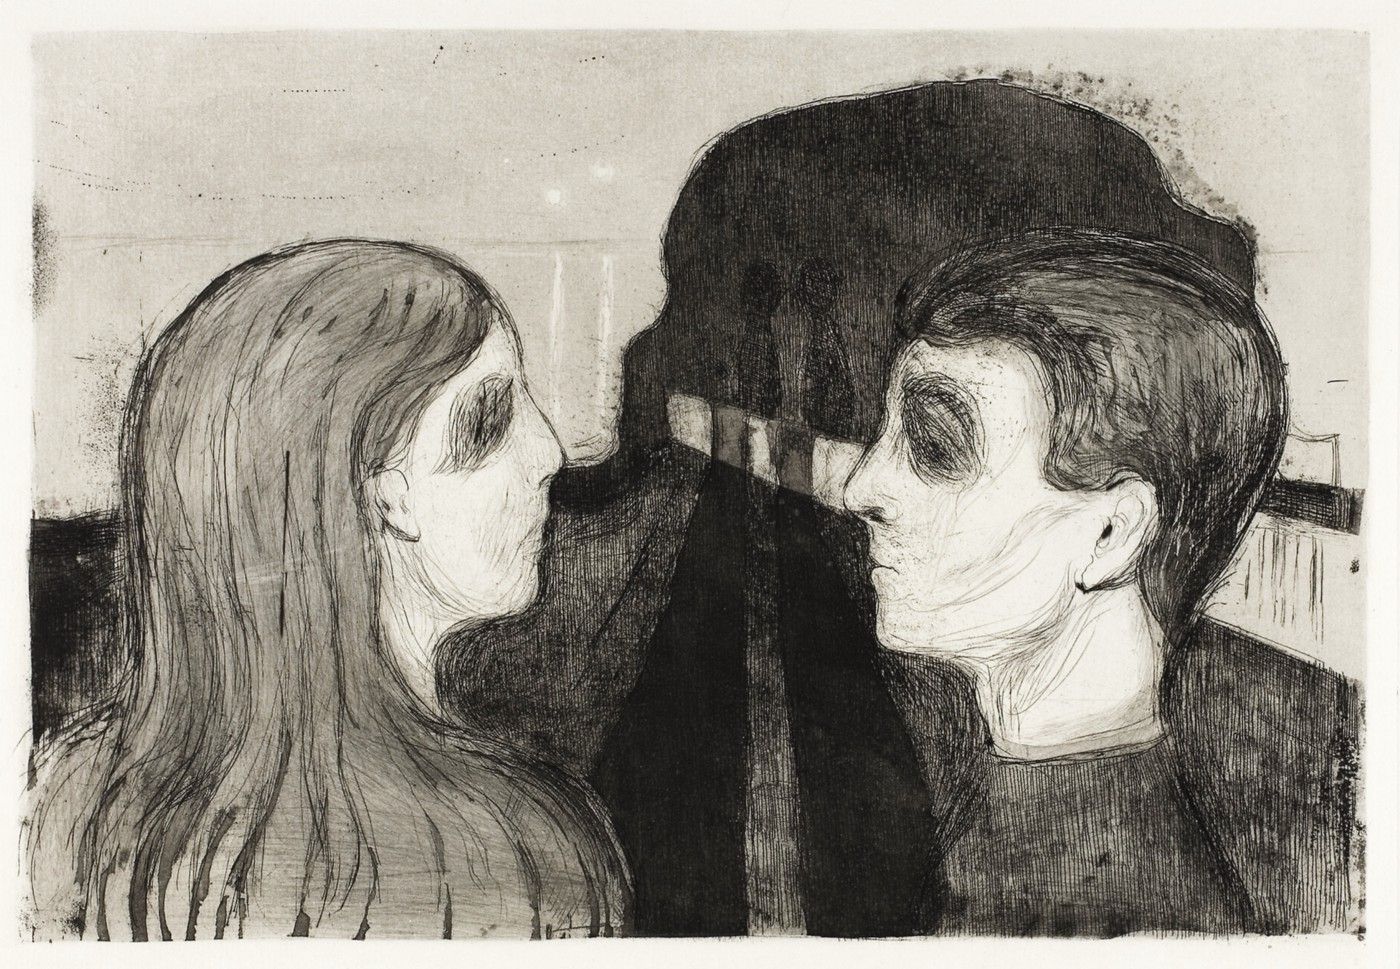 This black and white print by Edvard Munch shows the profile of a woman's head in the left foreground facing and mirroring the profile of a man's head in equal orientation and size. They are staring at each other, their eyes in shadow, looking forlorn. The shadows of their bodies meet in single-point perspective toward the background. There is also a white shape in one-point perspective placed from about the right middle-ground to the background that terminates at about the center of the image.